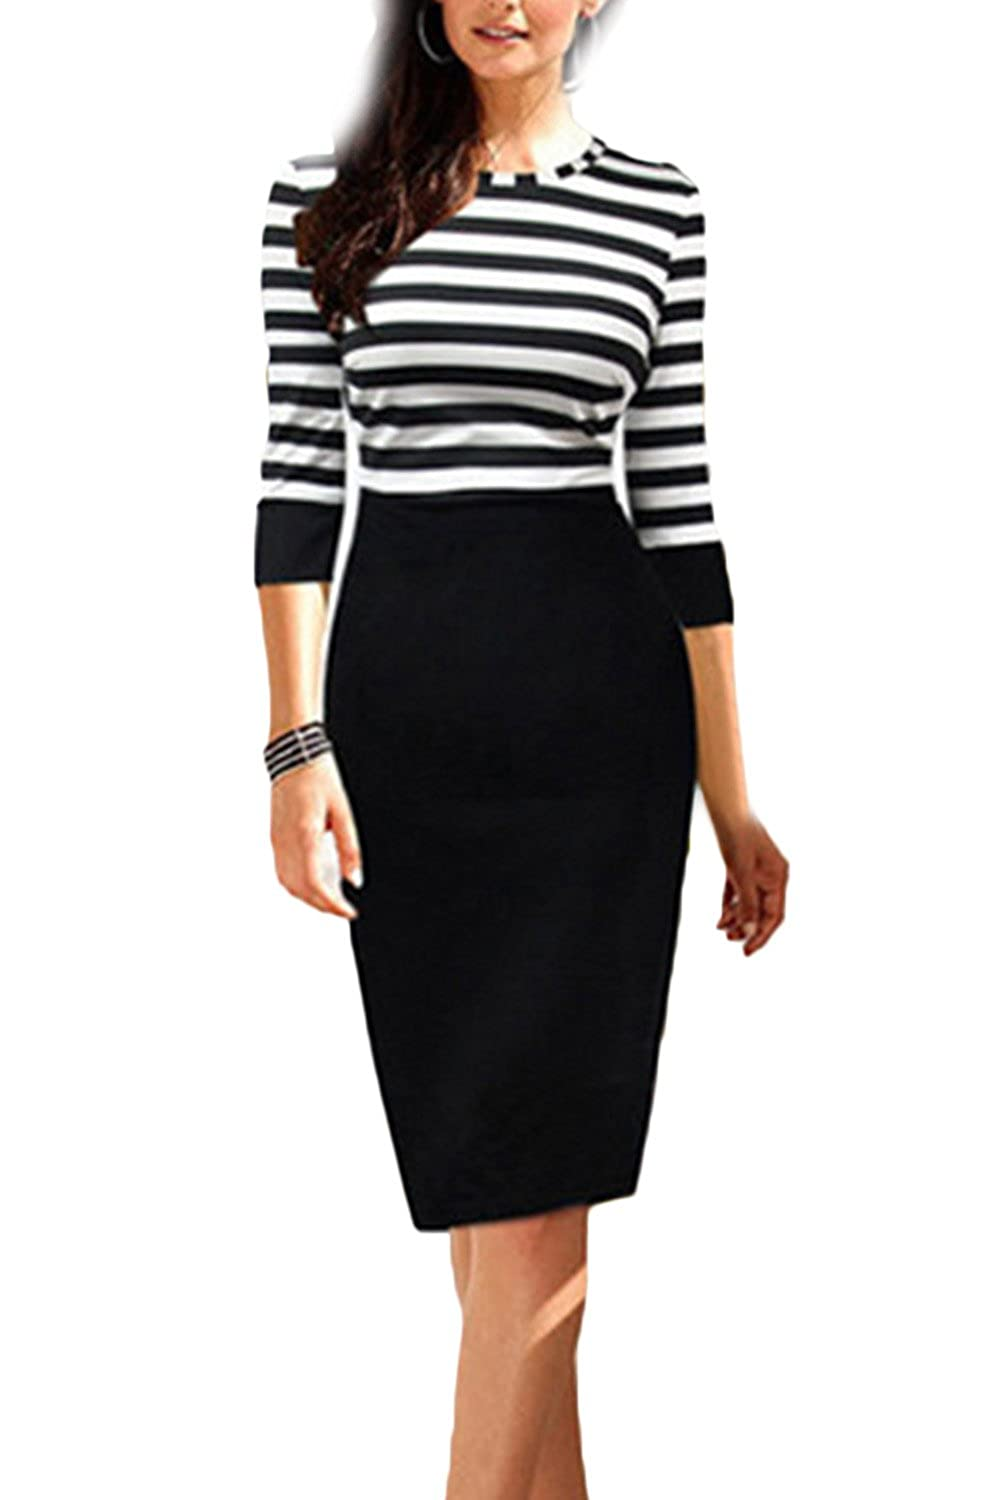 Women Autumn Stripes Long Sleeve Round Neck Office Bodycon Dress CANZ757